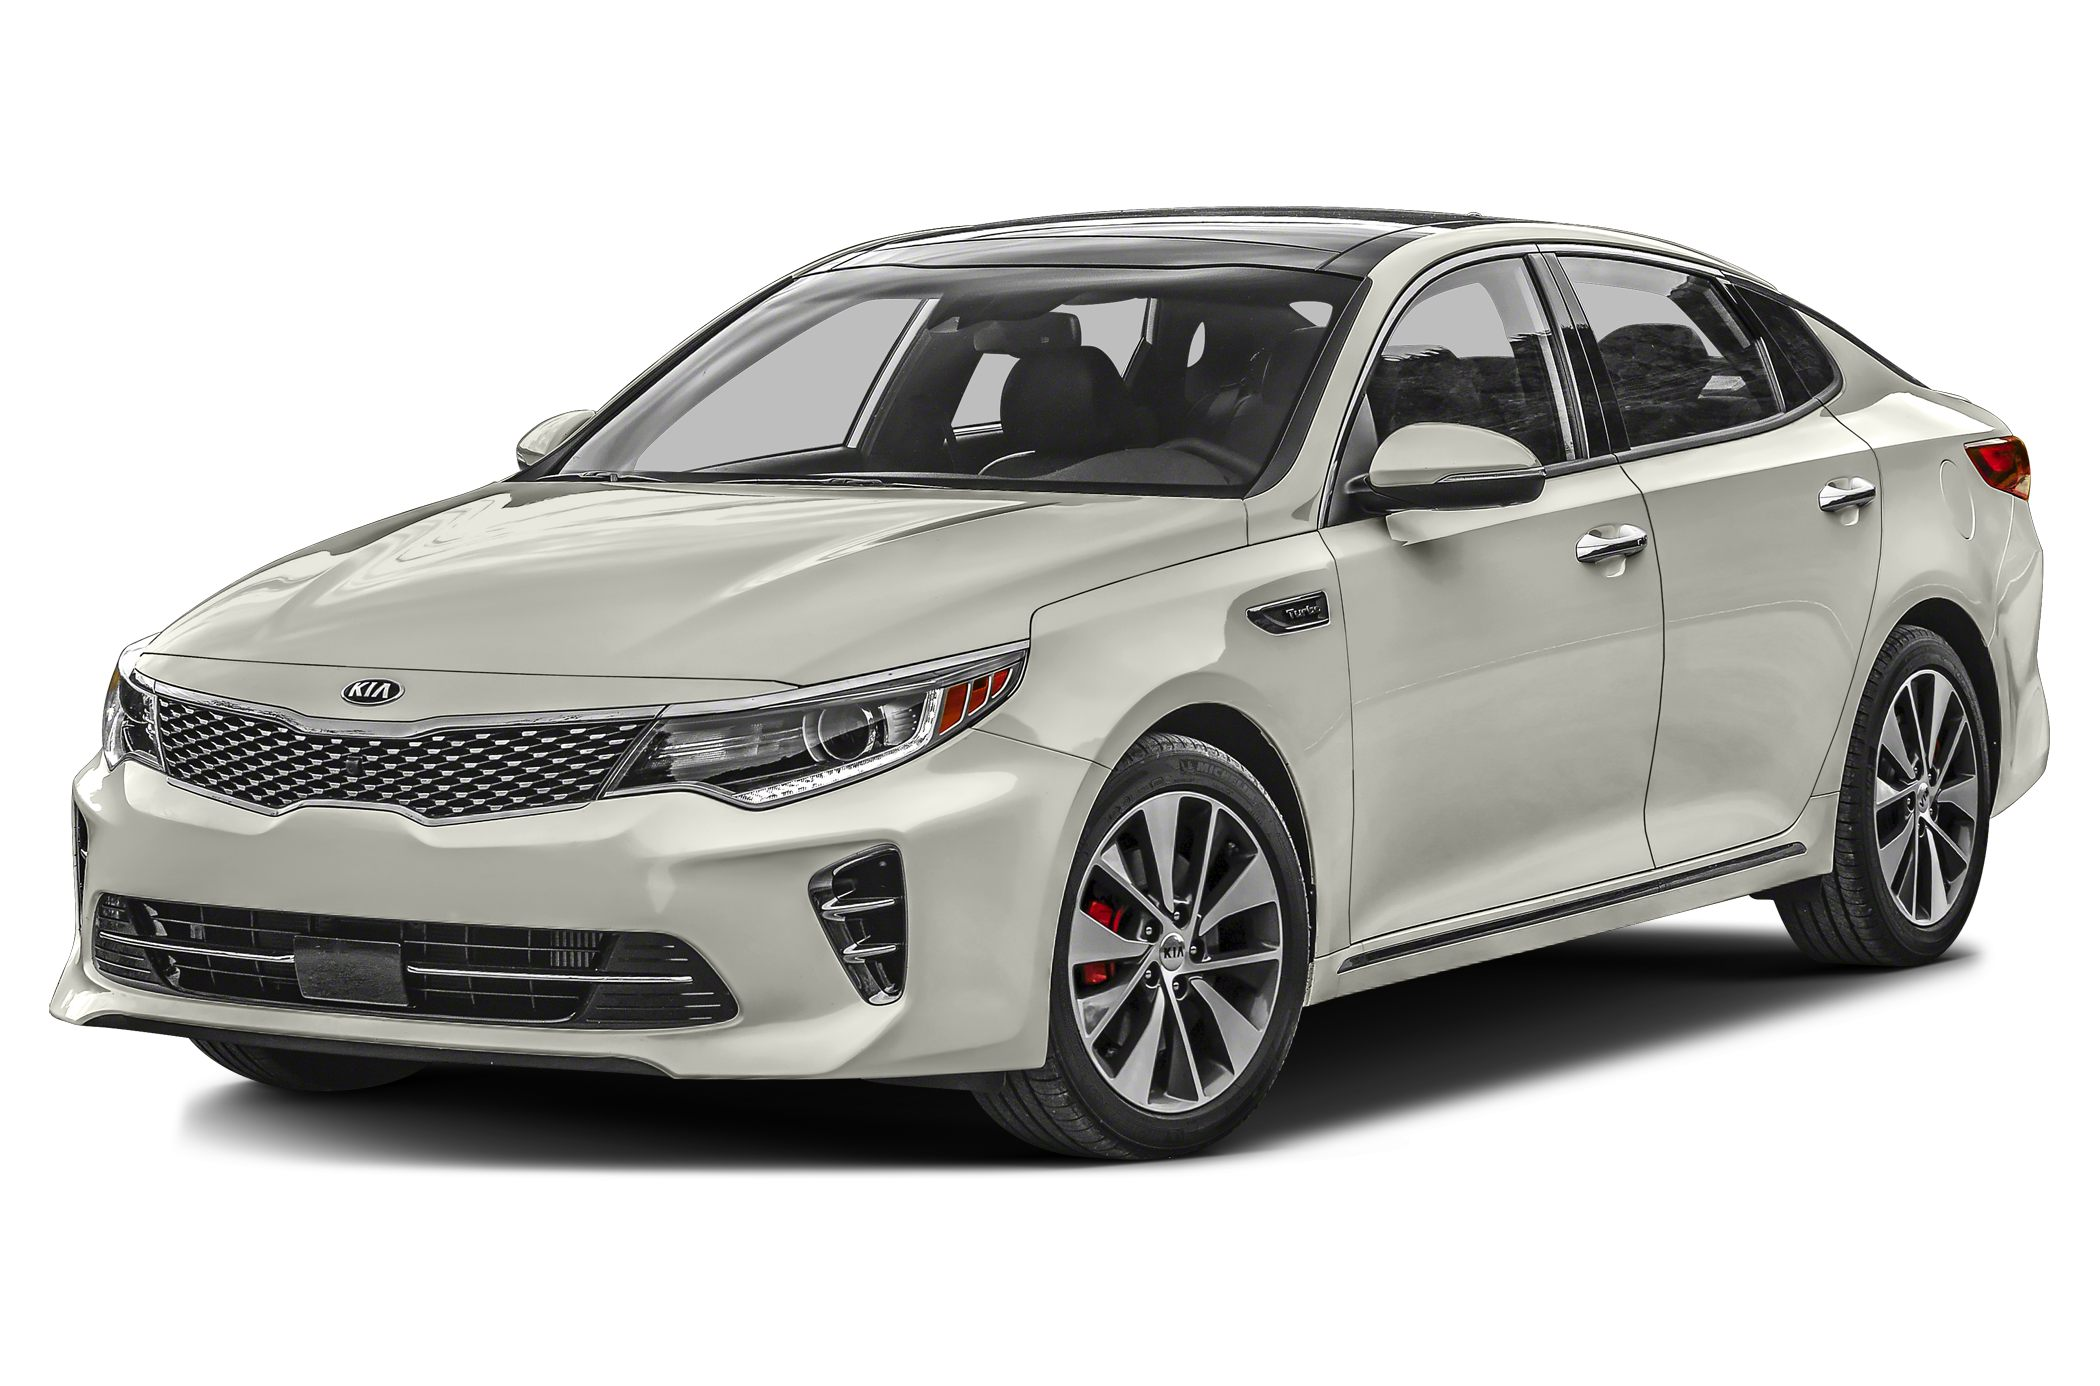 plus blog forte soul offers cars optima clearwater friendly payment m st tampa kia lease promotion or petersburg fl